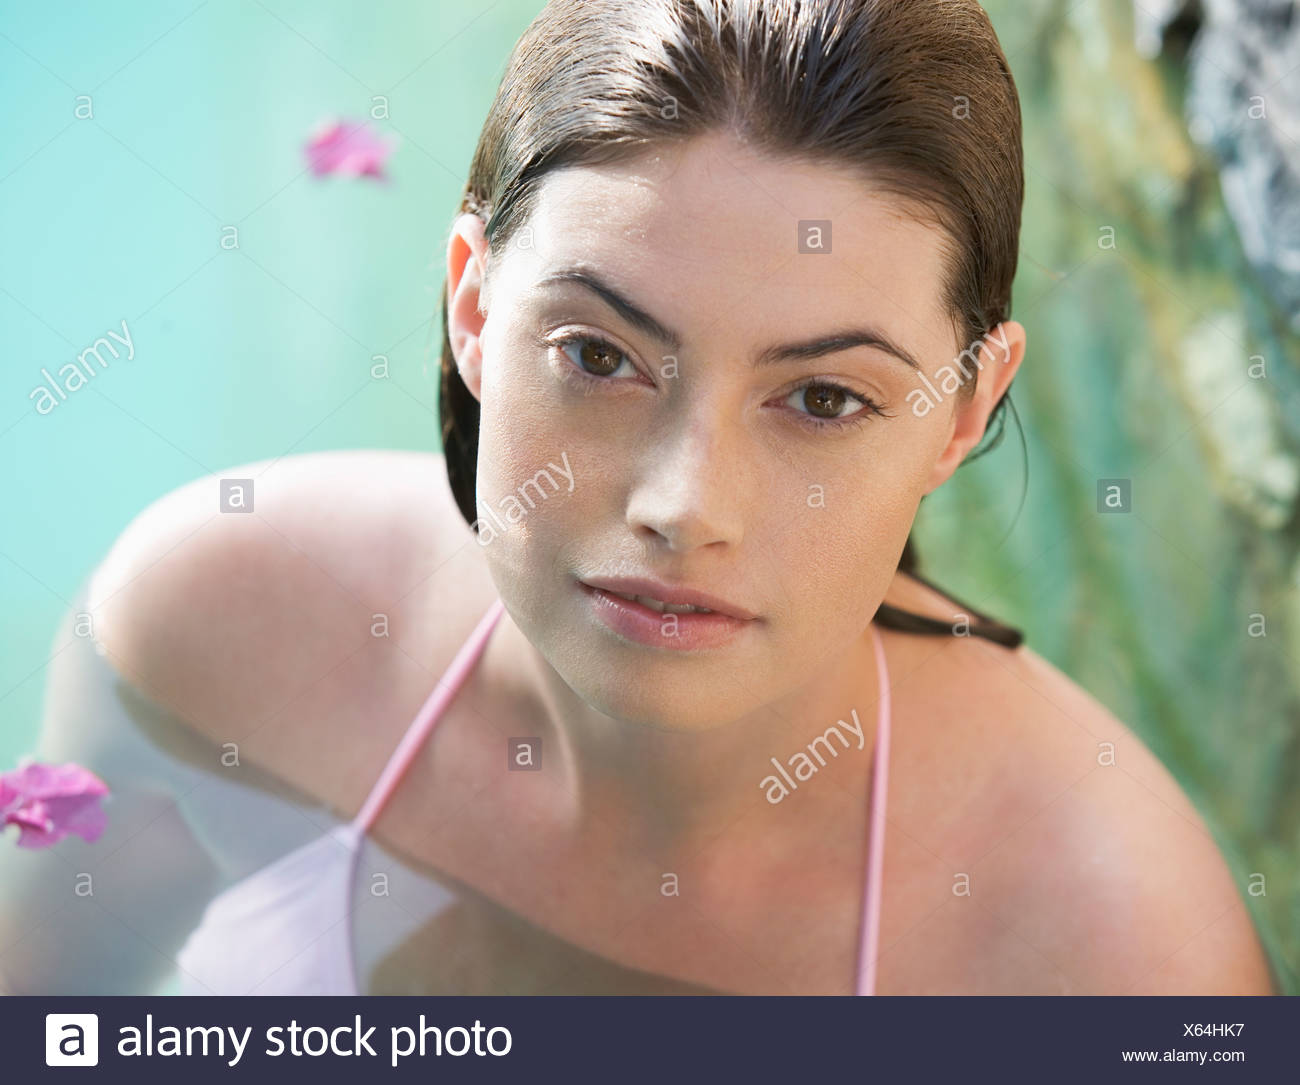 A woman wearing a bikini in a pool - Stock Image